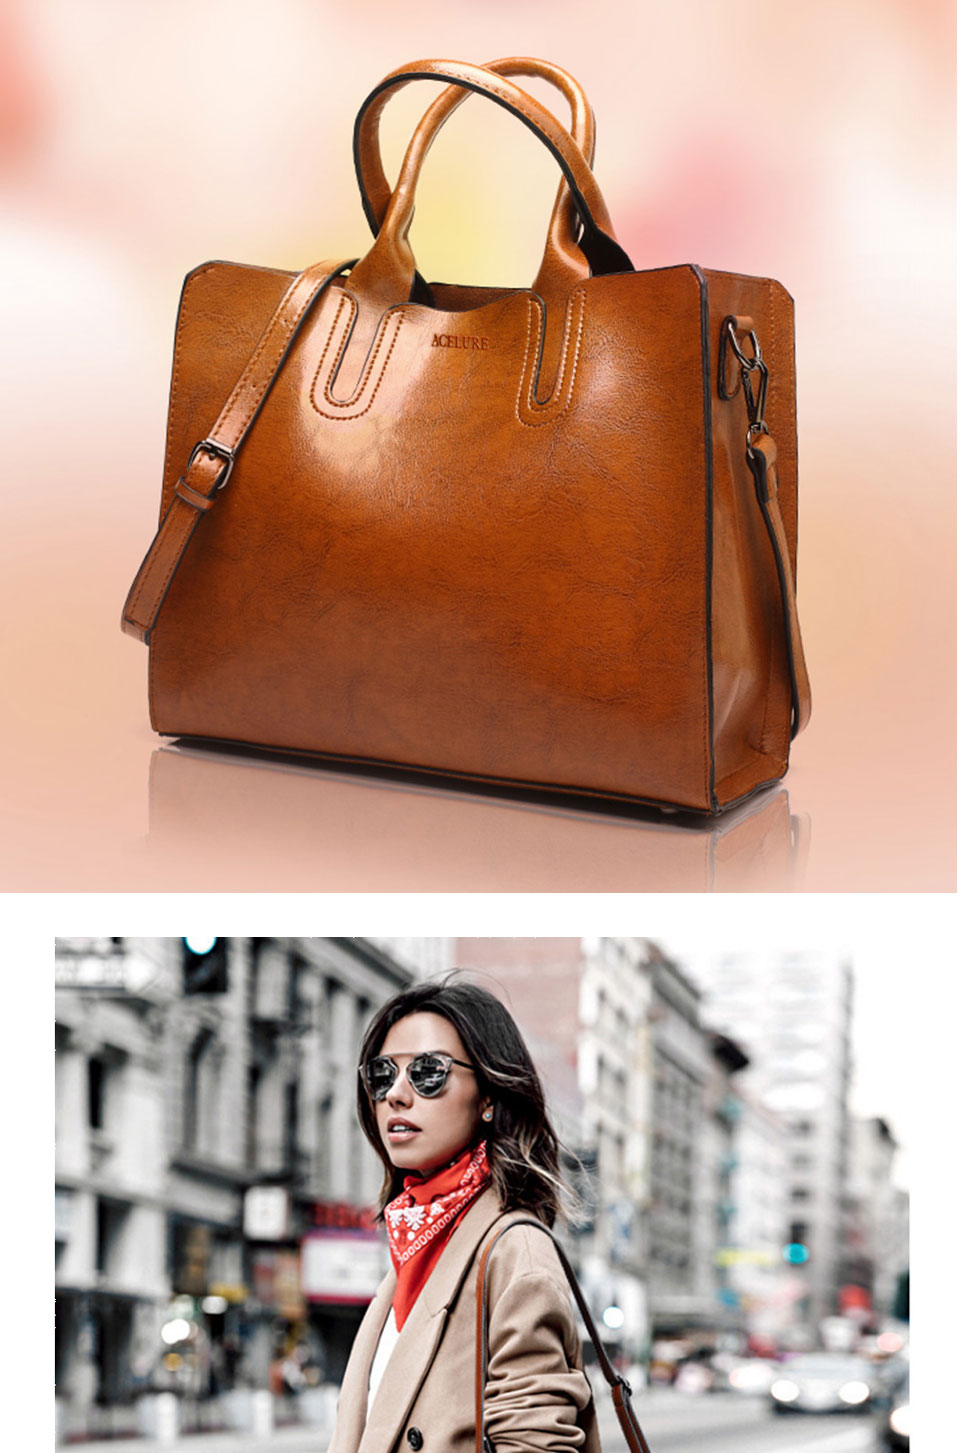 ACELURE Women Shoulder Bag Female Causal Totes for Daily Shopping All-Purpose High Quality Dames Handbag Leather Bags for Women